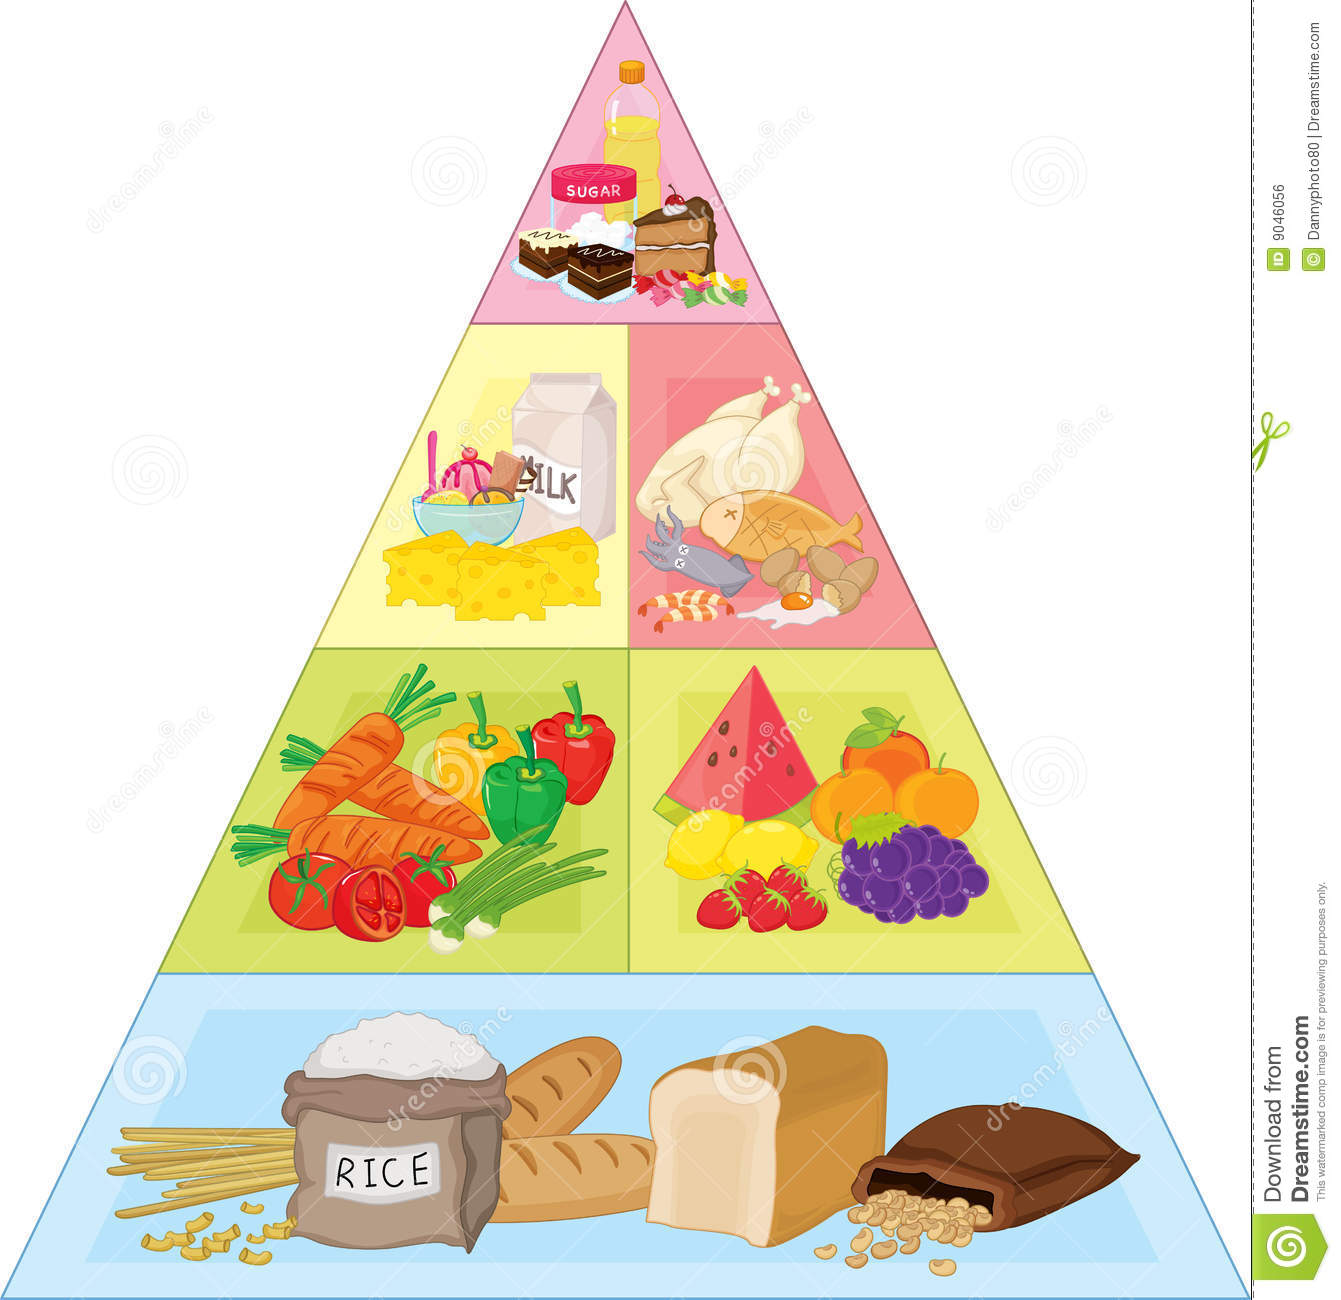 Food Pyramid For Kids Clipart Food pyramid Royalty Free